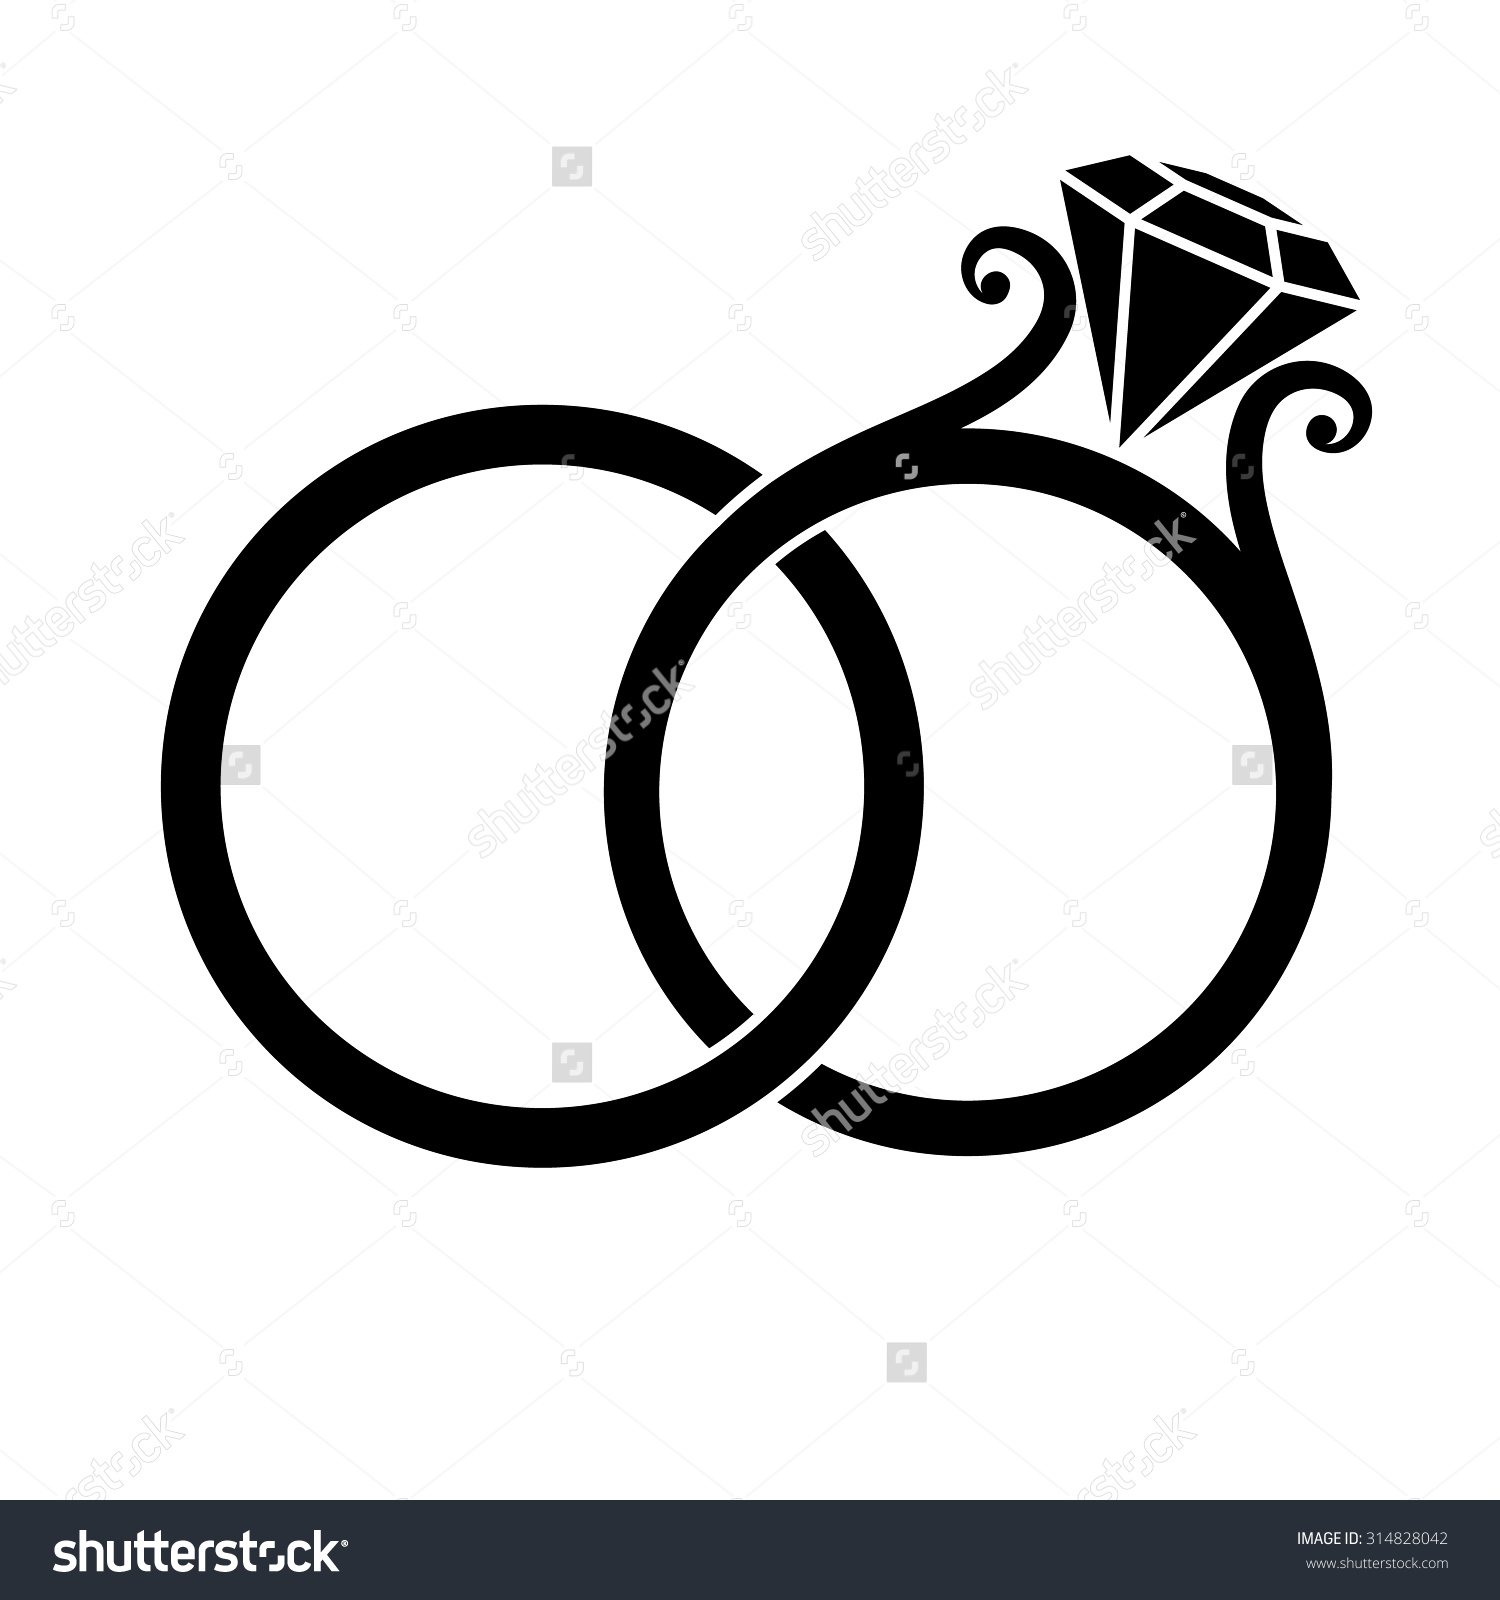 Wedding rings clipart silhouette.